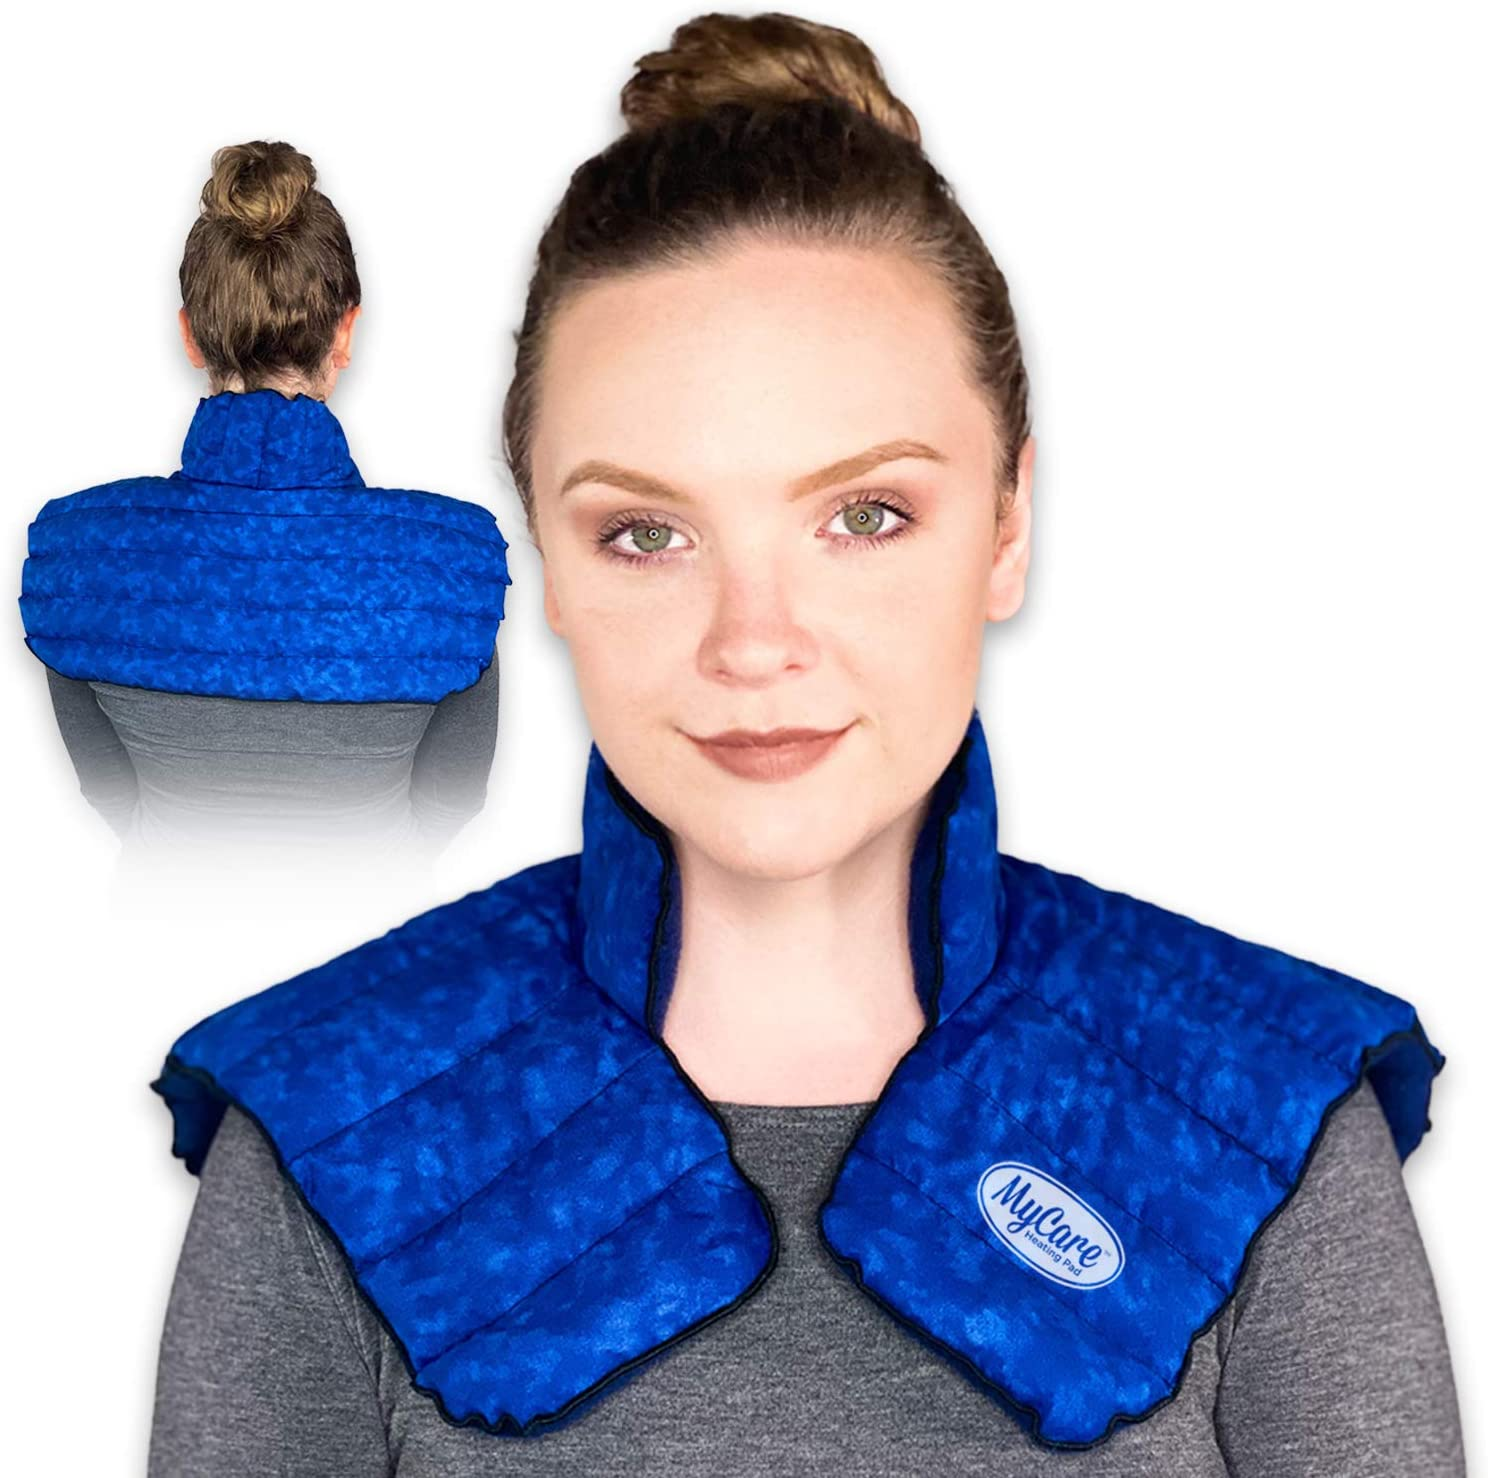 MyCare Heating Pad | Microwavable Large Neck and Shoulder Wrap for Instant Pain Relief - Weighted for Deep Moist Heat Pack for Stiffness, Arthritis, Bursitis, and Relaxation - Safe Natural Home Remedy